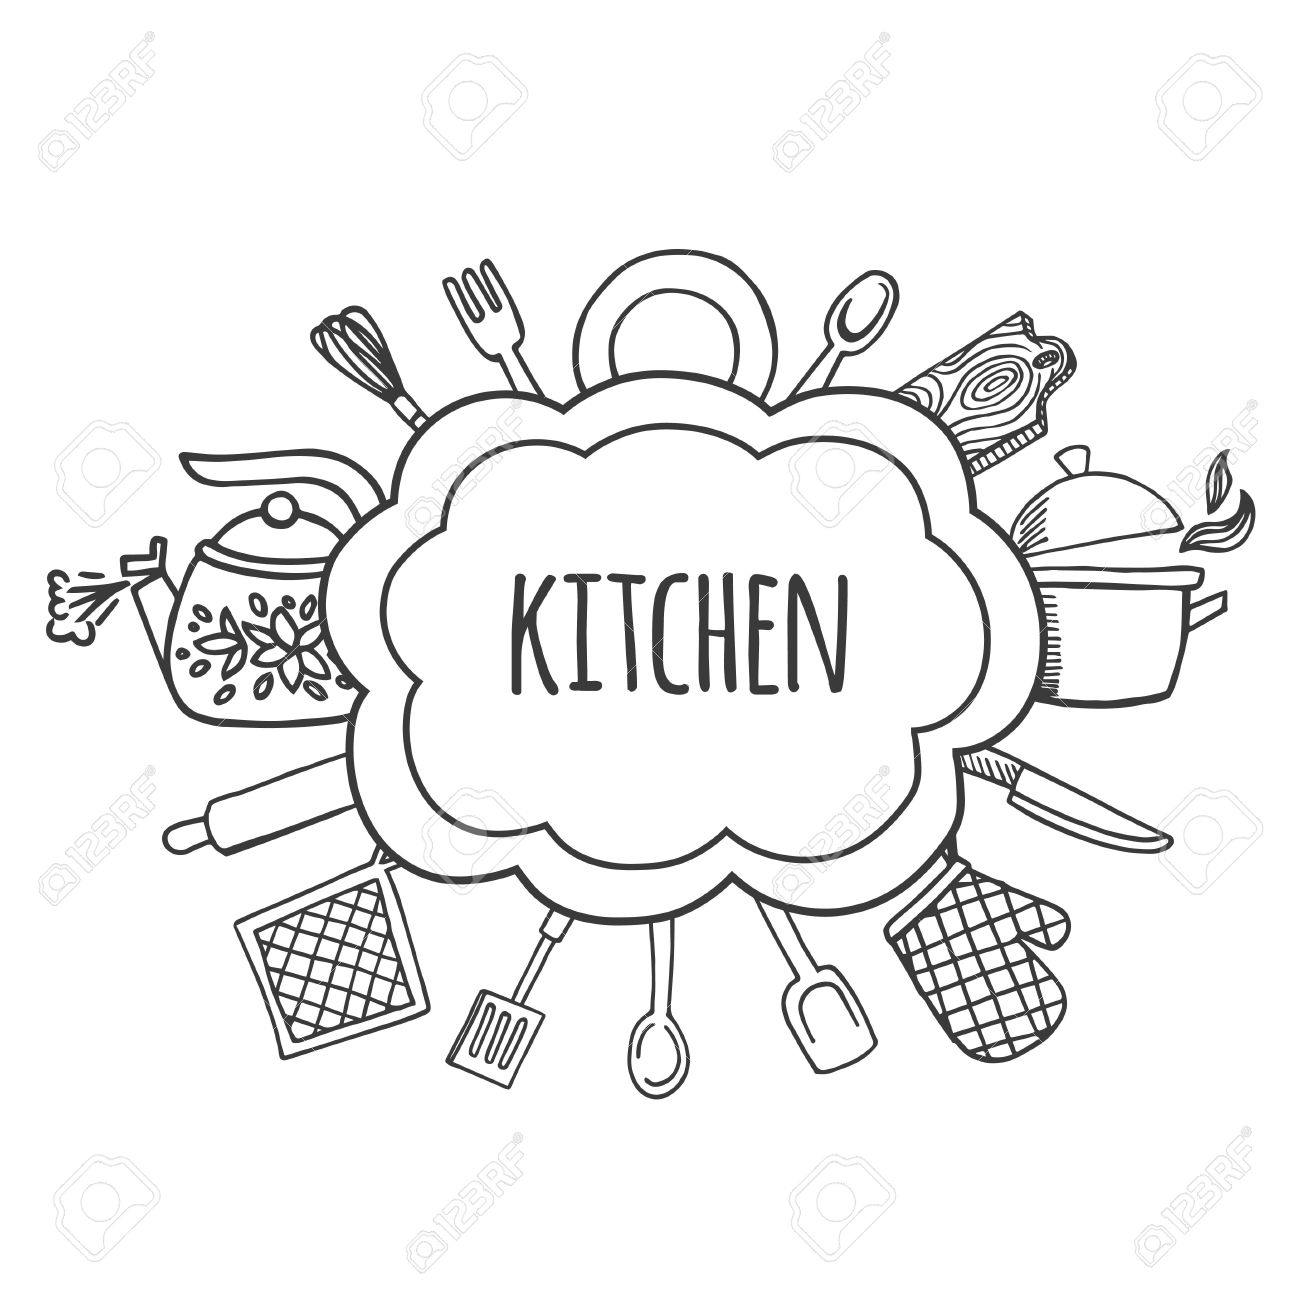 Kitchen tools drawing - Kitchen Tools Sketch Bubbles Vector Illustration Background Kitchen Stock Vector 52035577